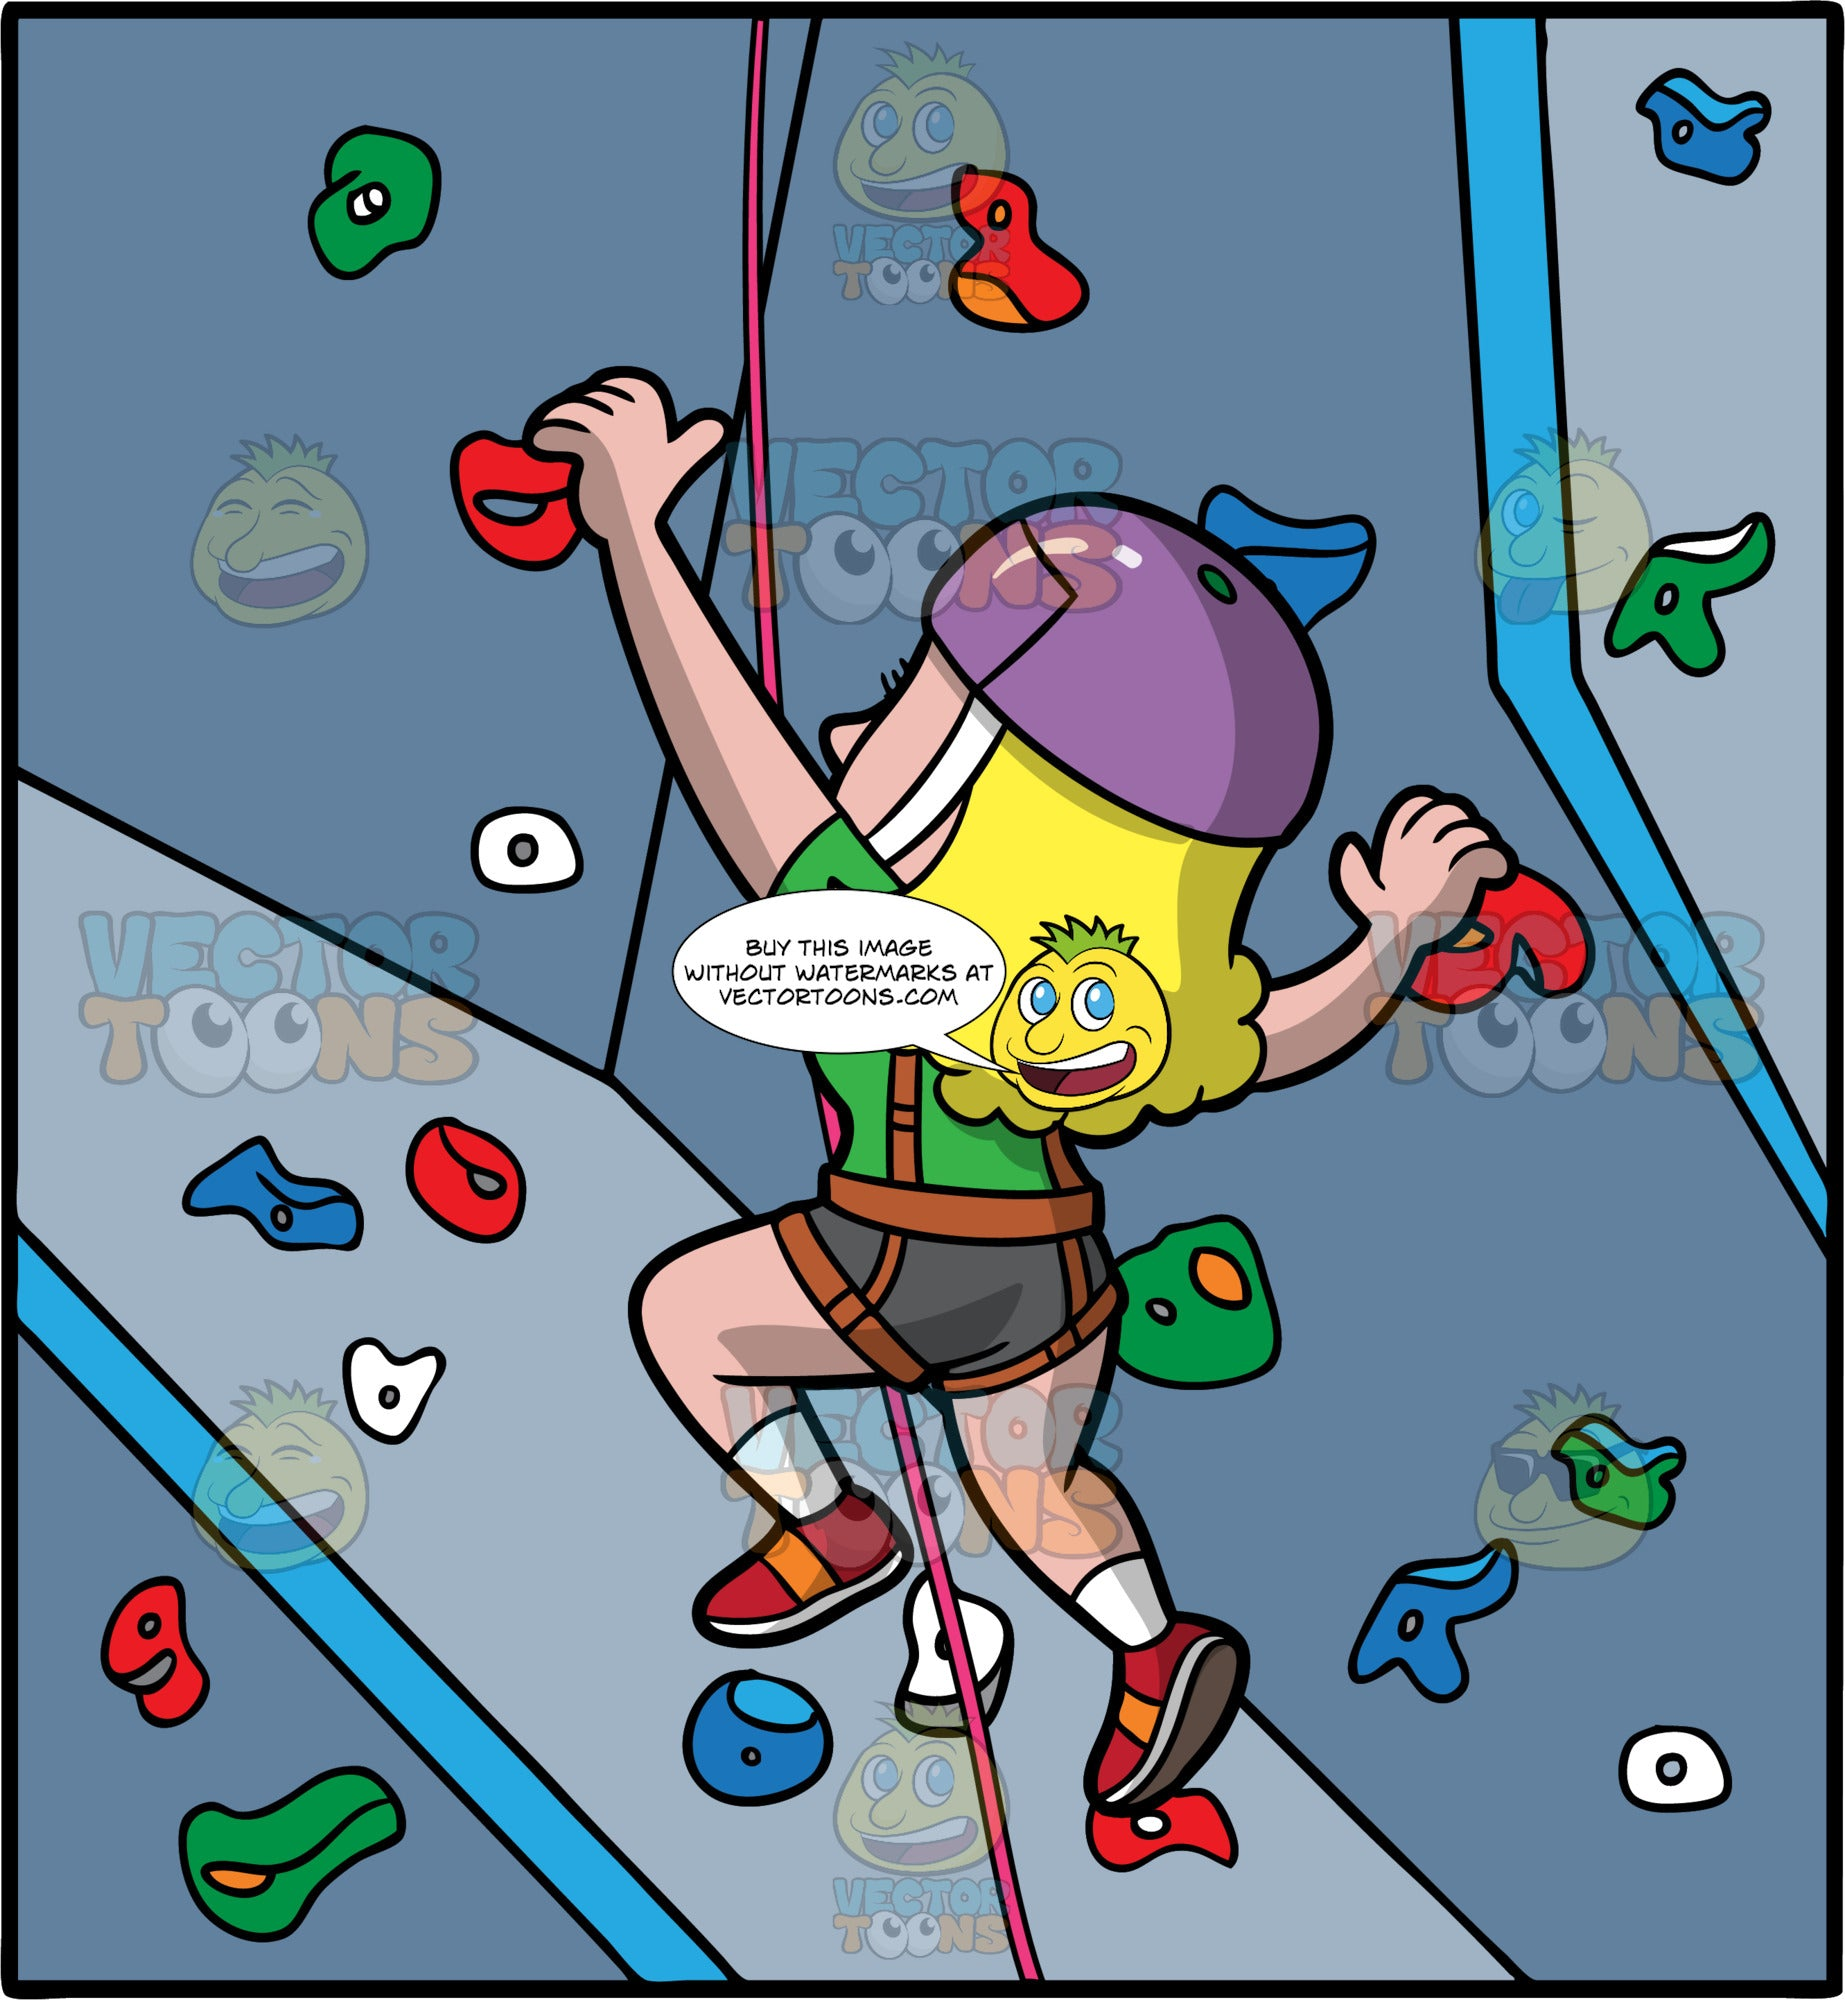 A Blonde Woman Indoor Rock Climbing. A woman with blonde hair, wearing gray shorts, a green shirt, red rock climbing shoes, and a purple helmet, is hooked into a brown harness attached to a red rope, as she uses the foot and hand holds to climb up a rock climbing wall